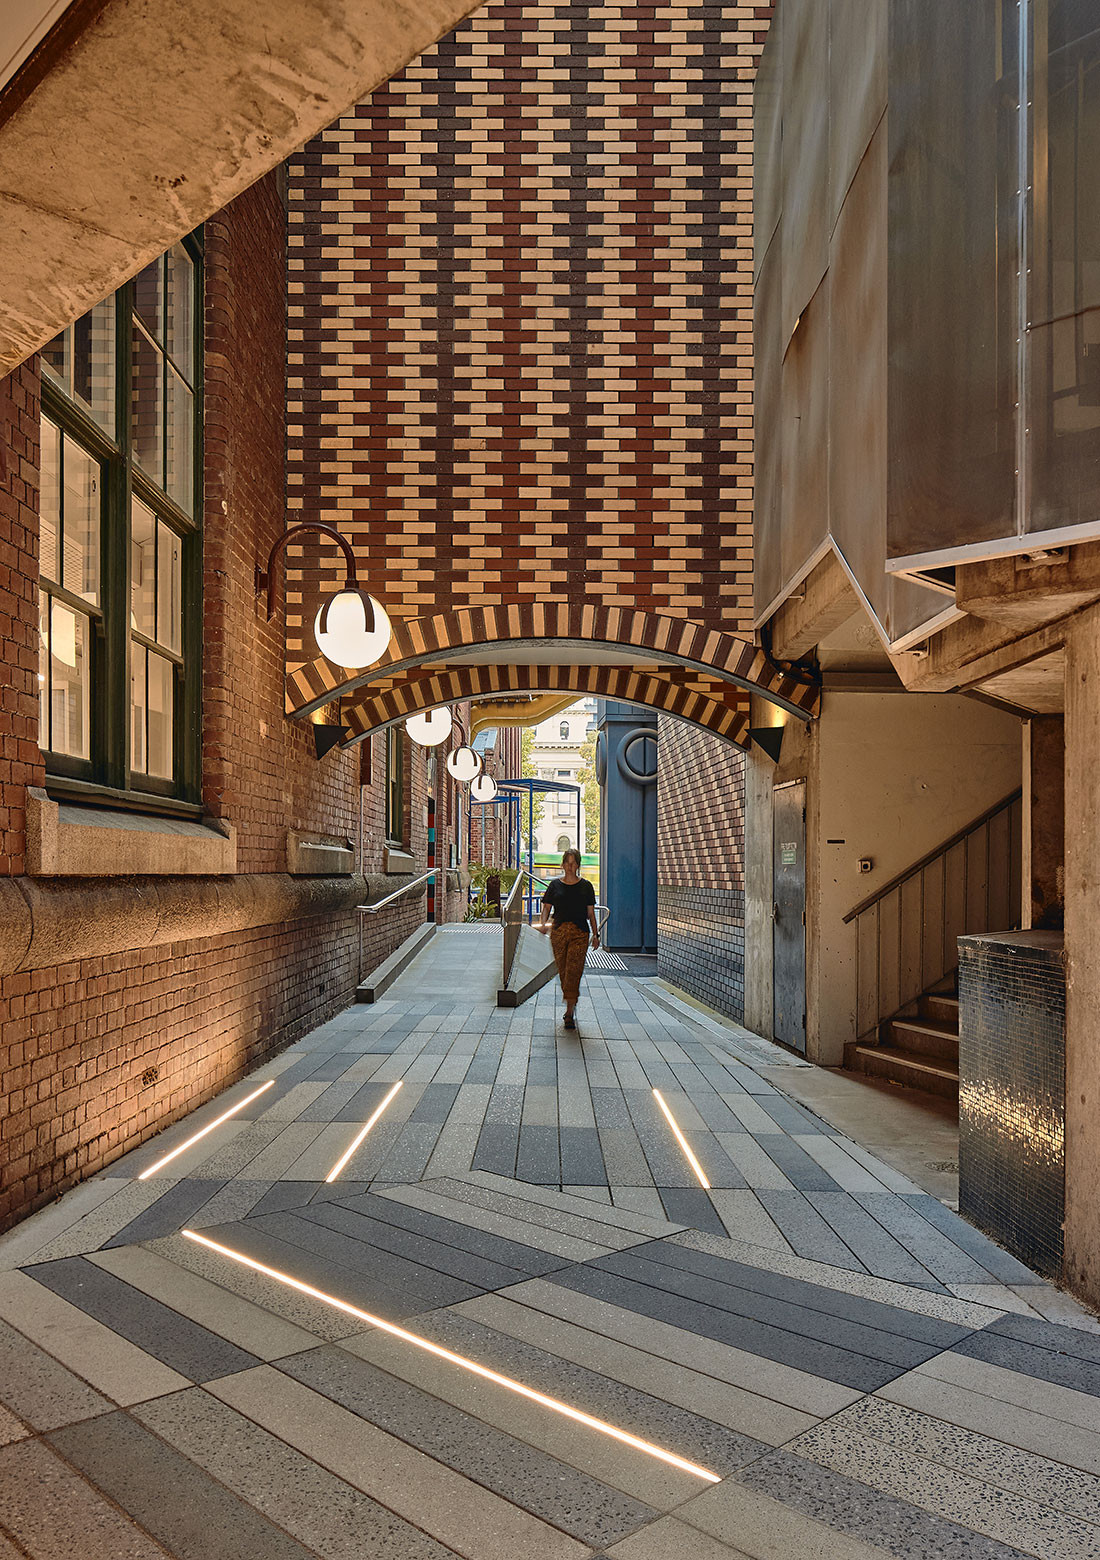 RMIT Rodda Lane Precinct by Sibling Architecture is on the shortlist for the Colorbond Award for Steel Architecture. Photo by Peter Bennetts.